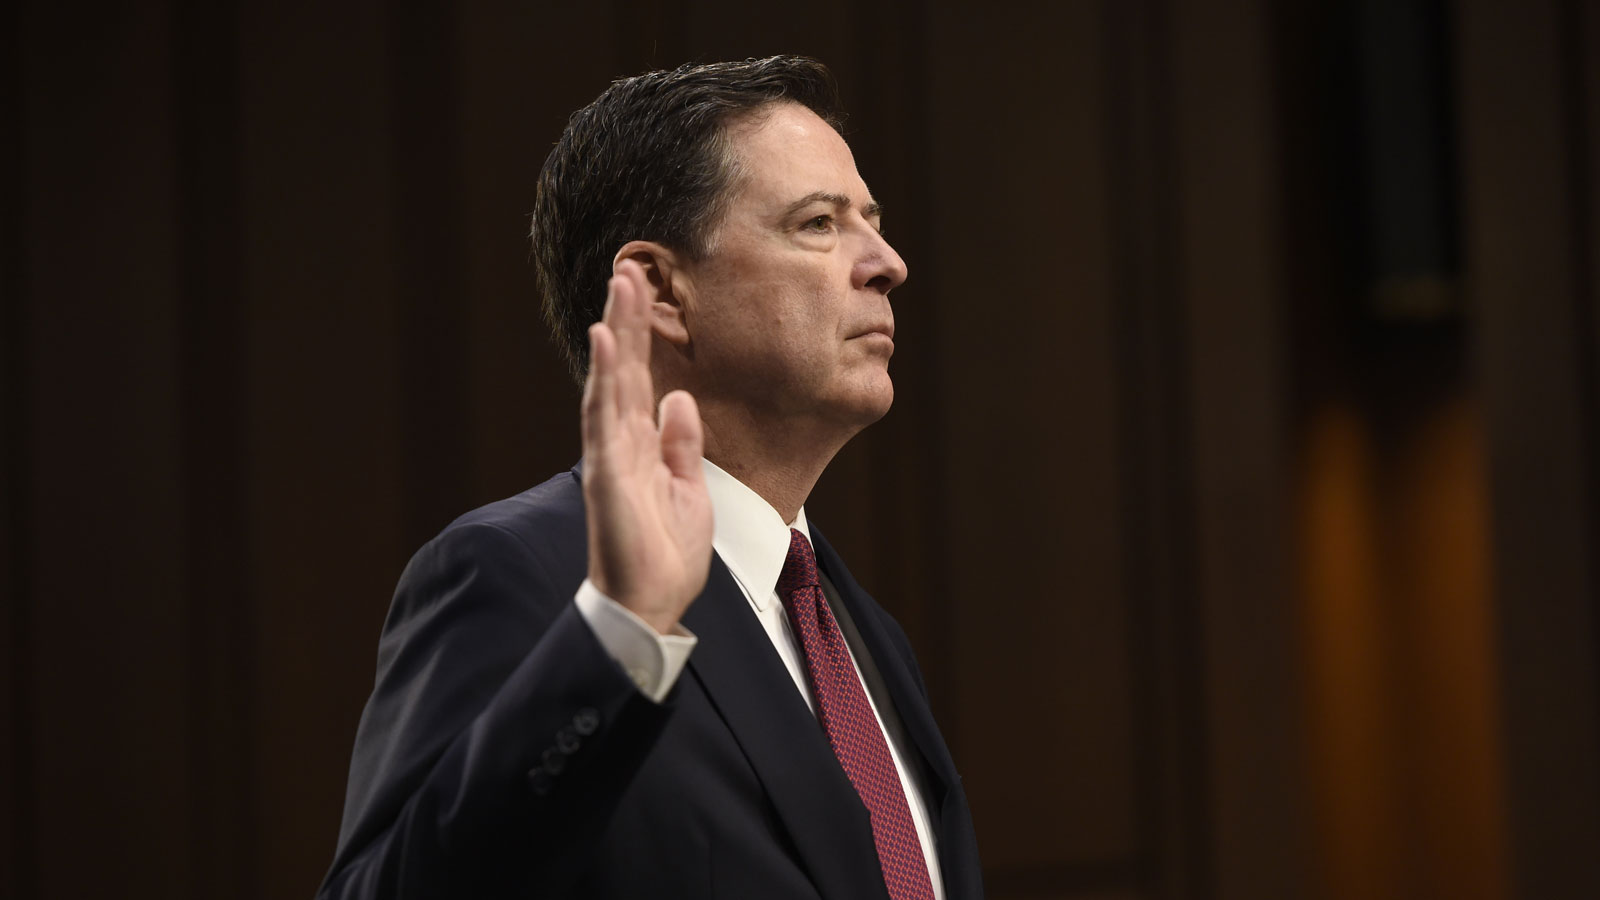 james-comey-tweets-drinks-FT-BLOG0617.jpg